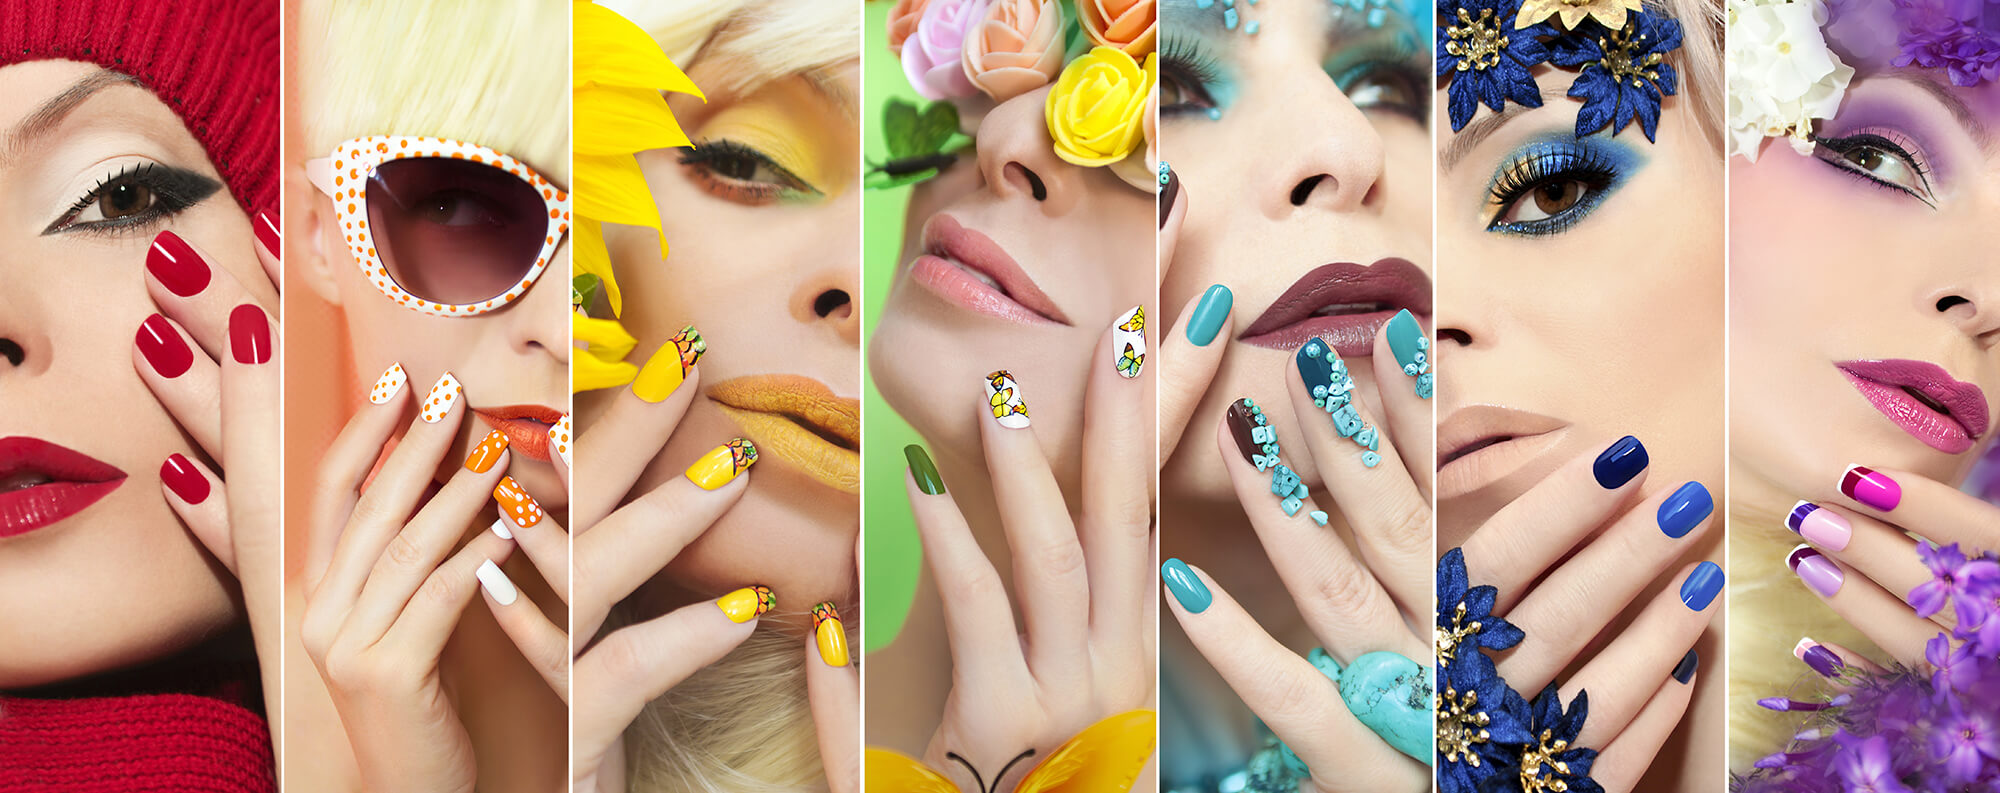 A panel of images showing artistic nail art in many colours